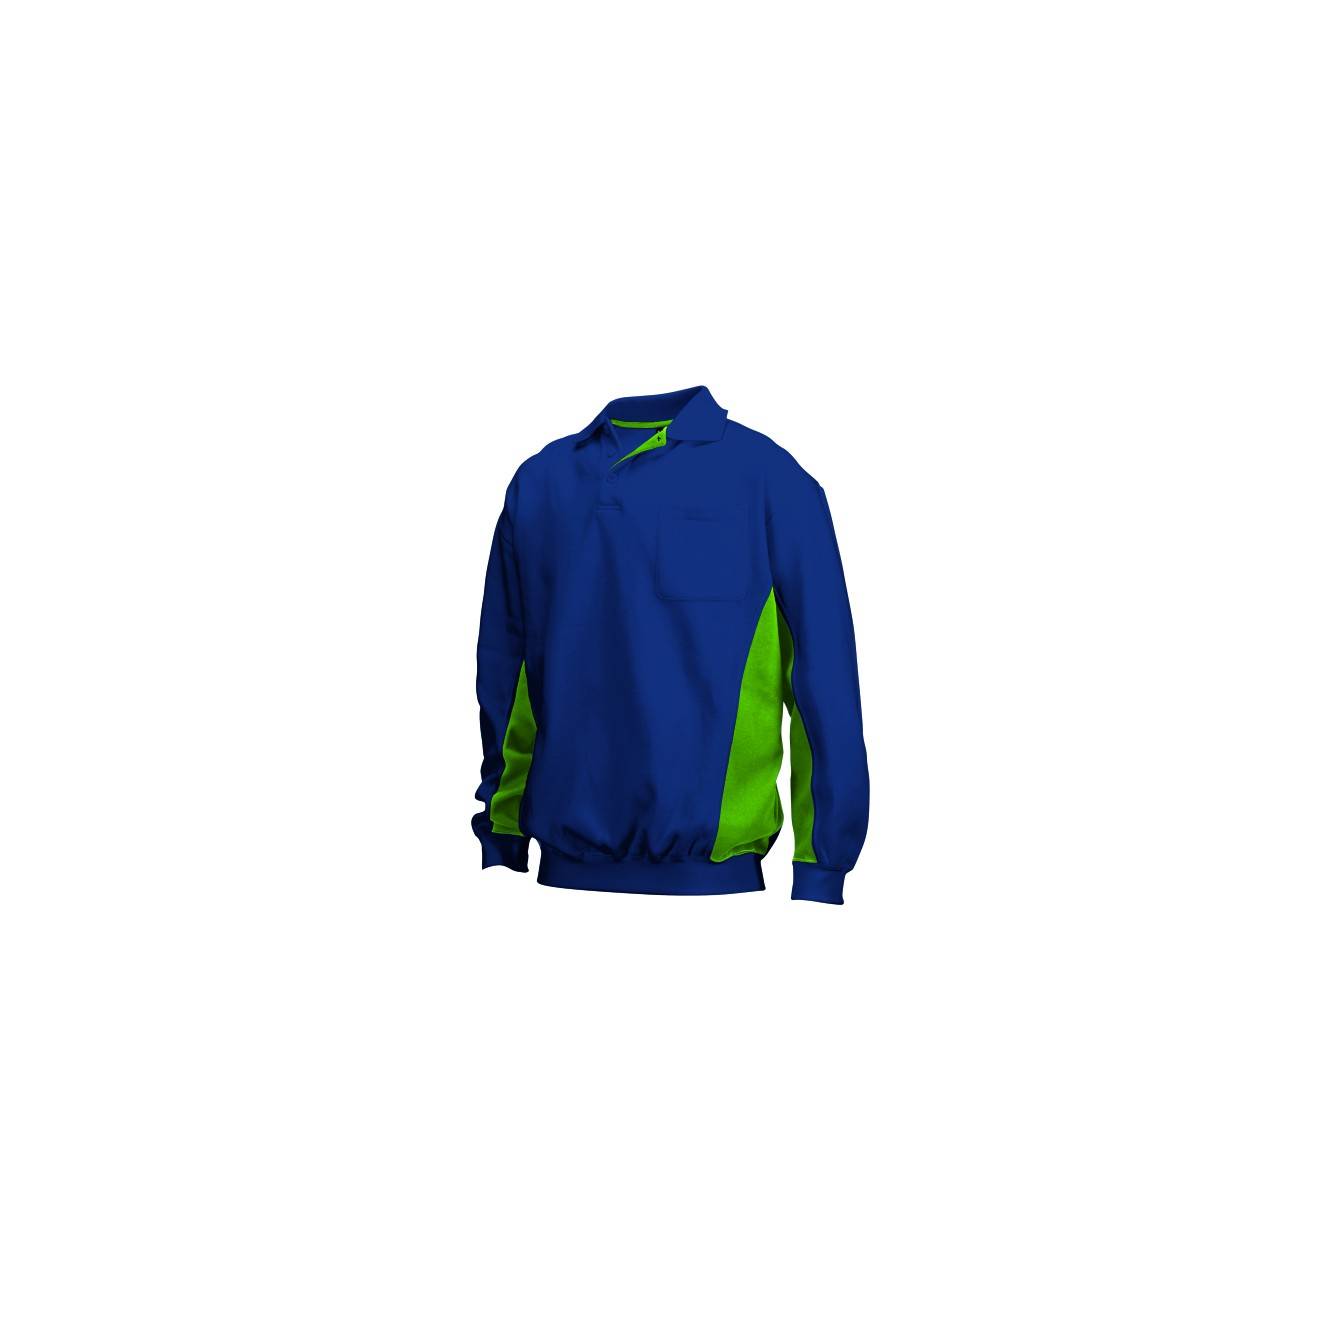 Polosweater bi-color